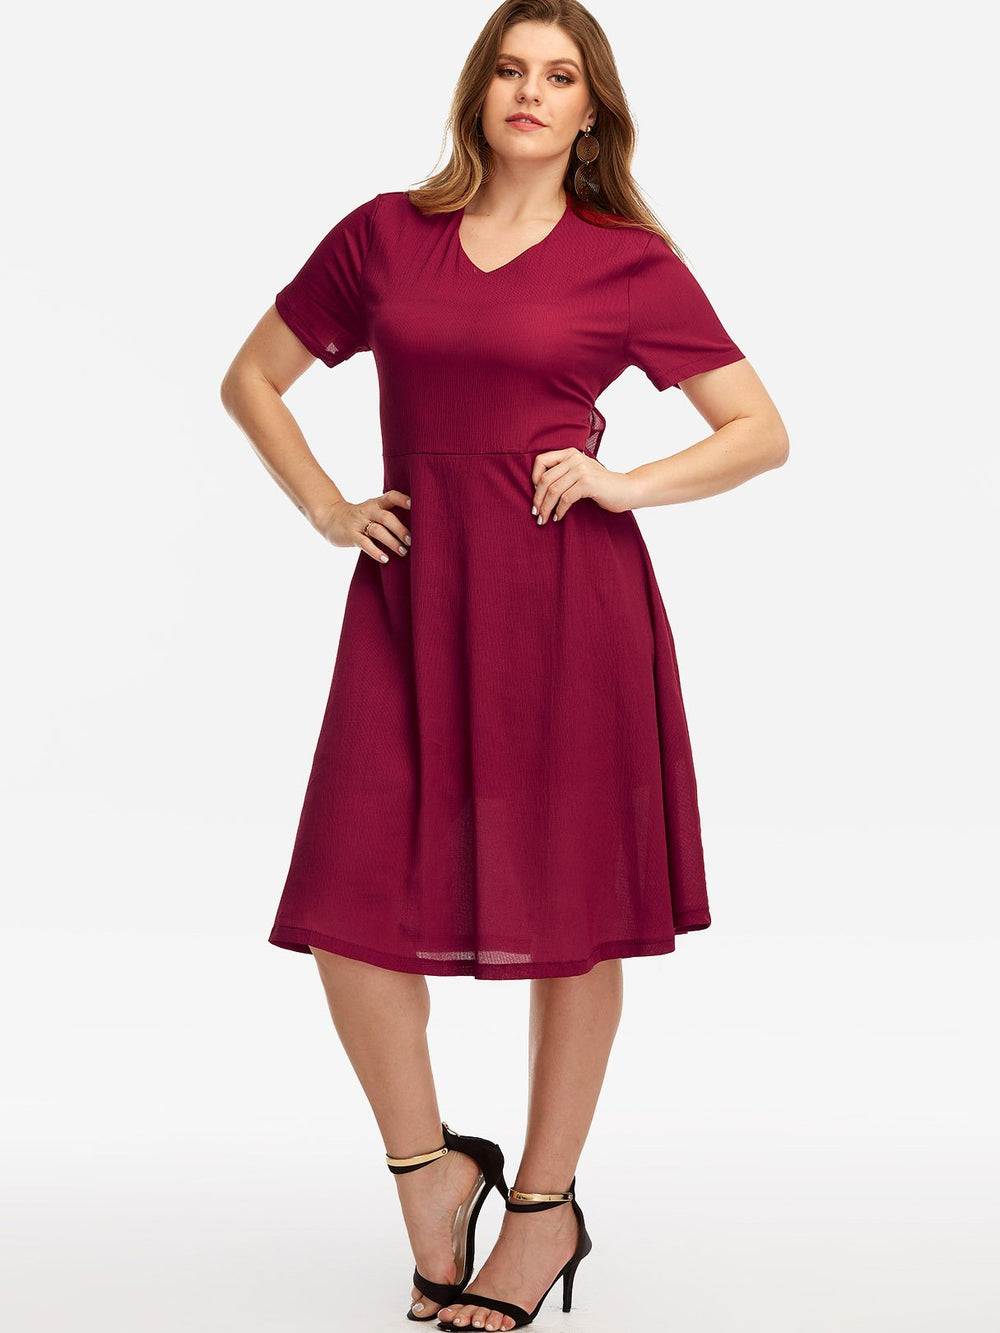 Womens Short Sleeve Plus Size Dresses